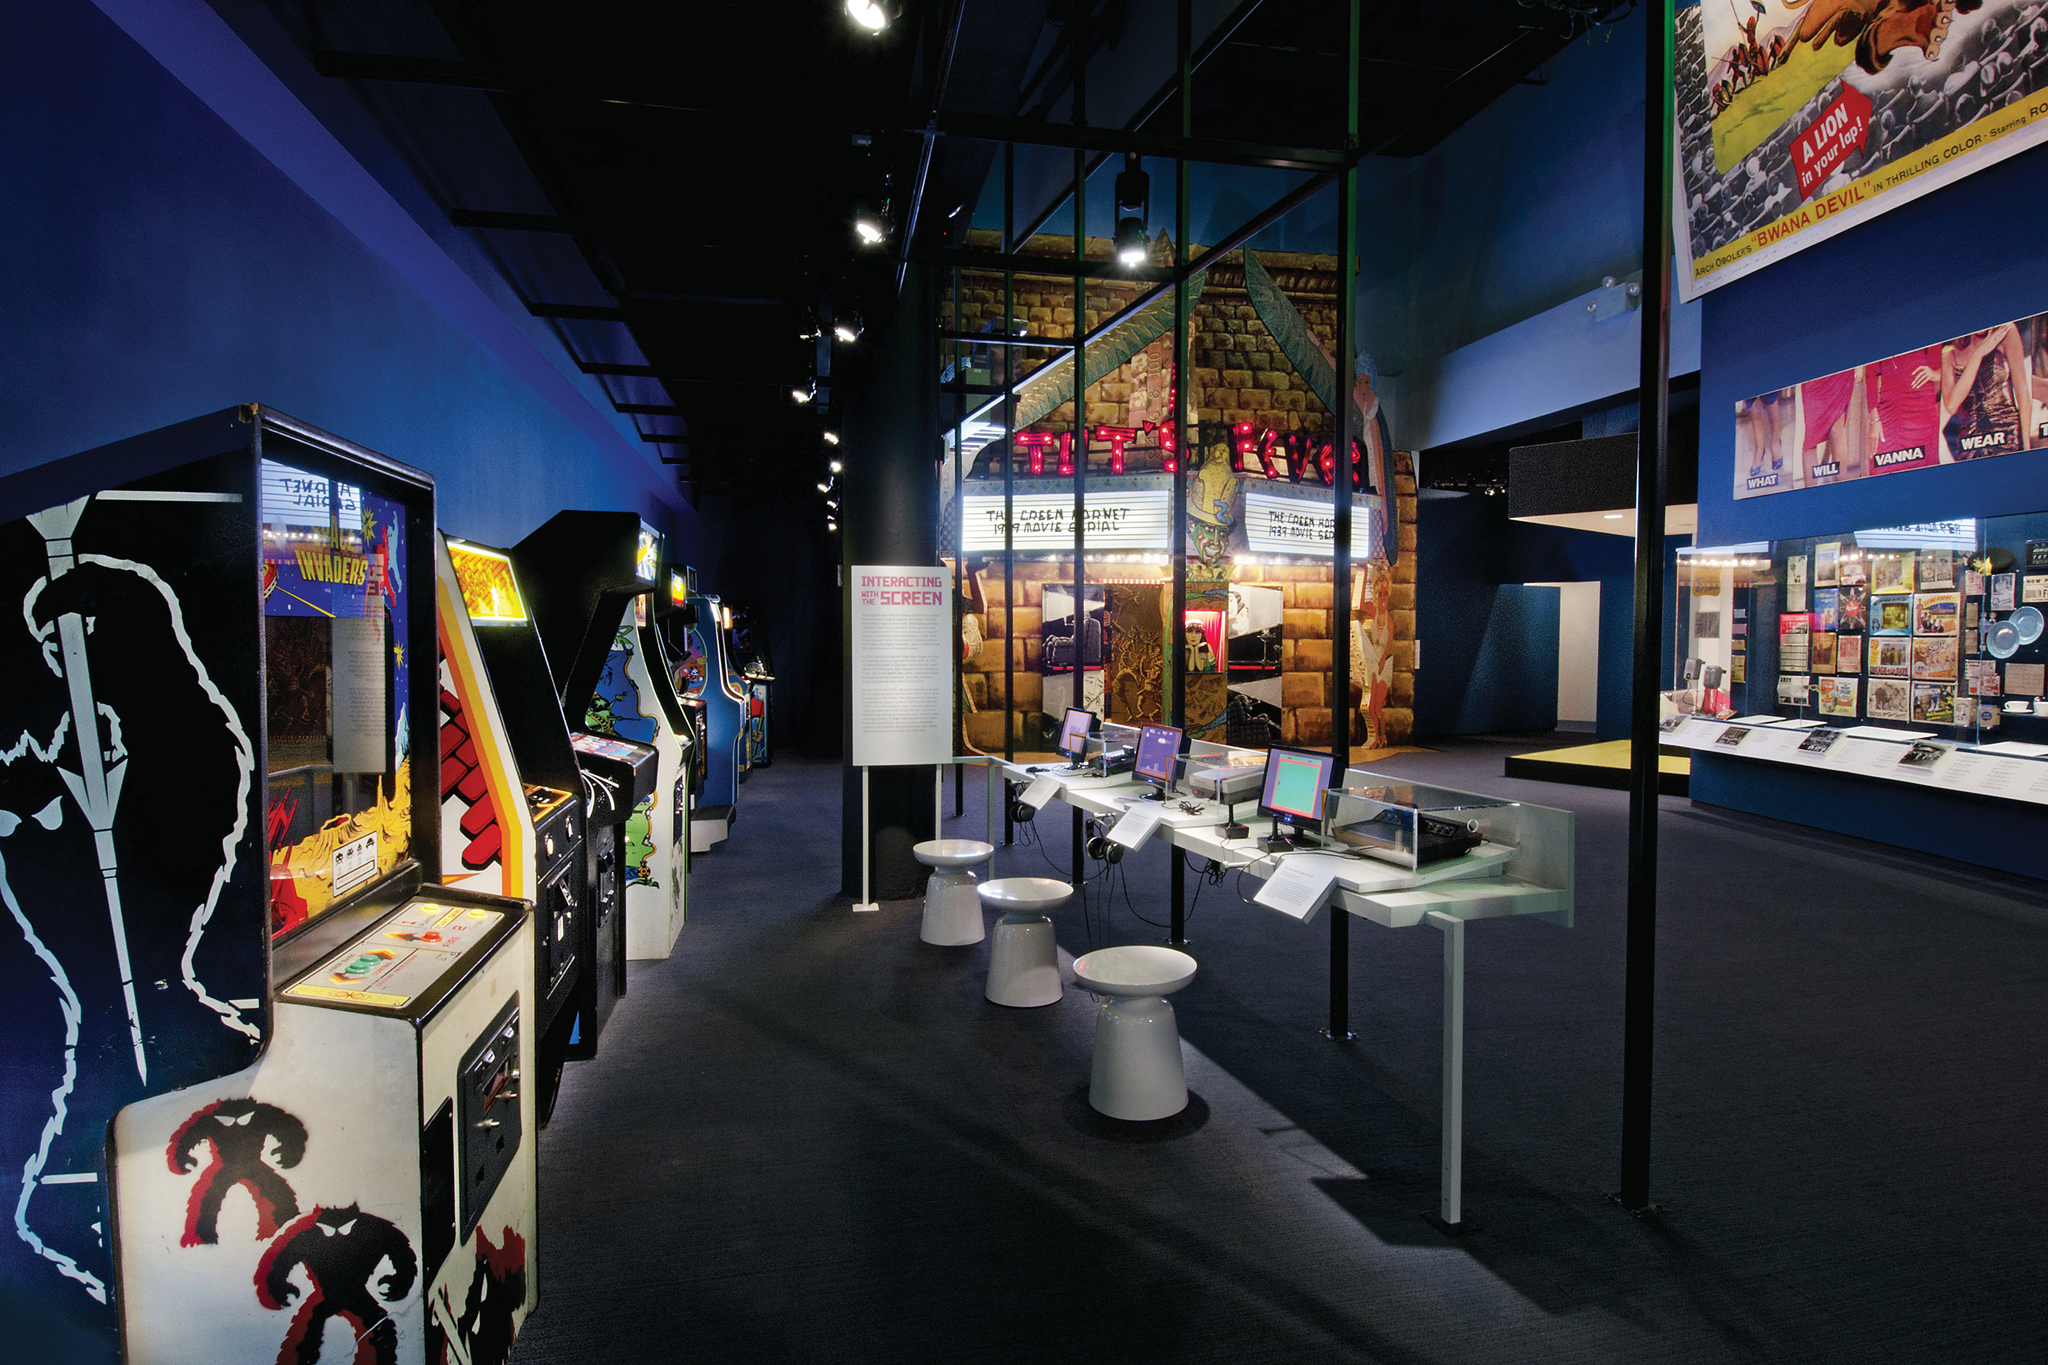 Get in on movie magic at the Museum of the Moving Image